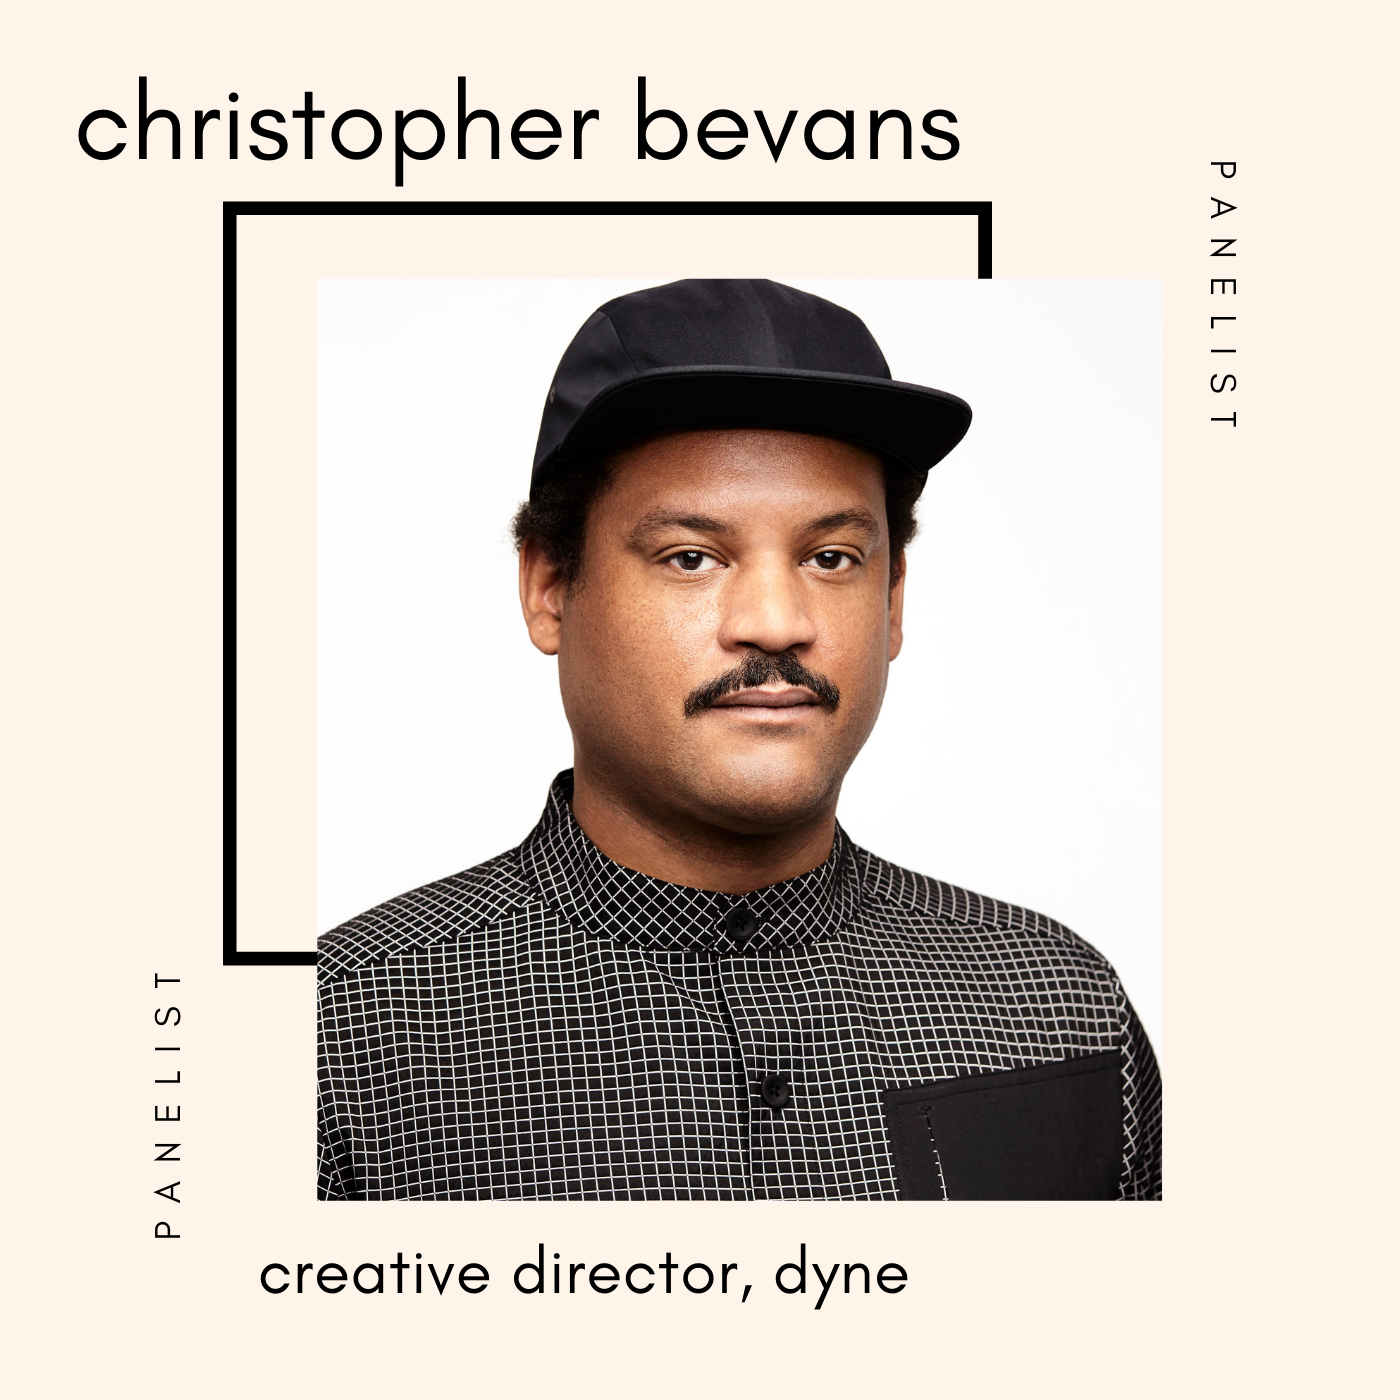 Christopher Bevans speaker at the sustainable fashion forum